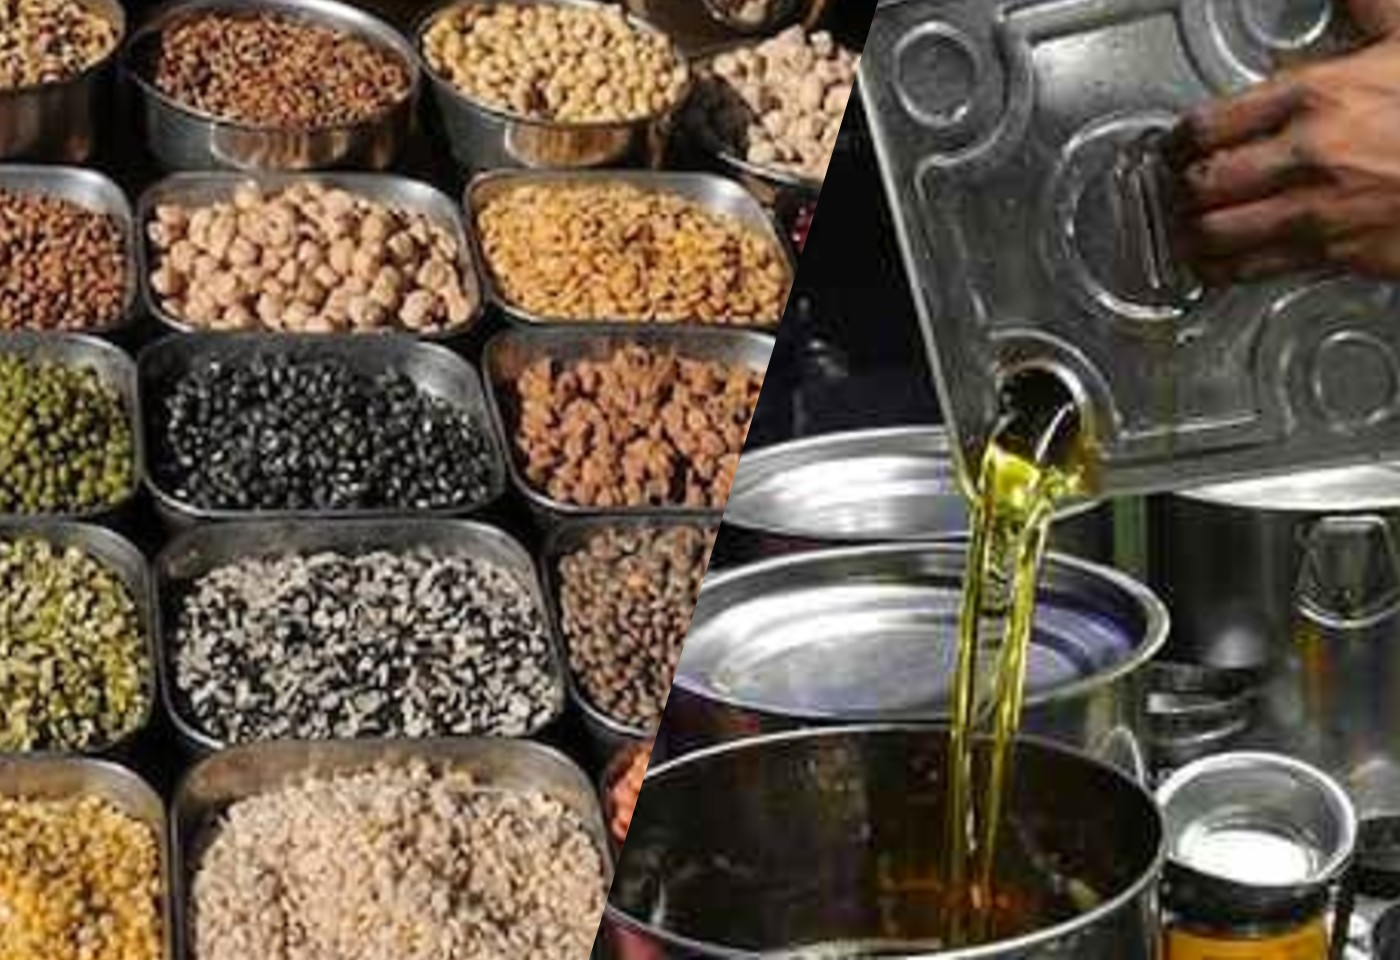 Inflation in edible oil, pulses and rice has broken the backbone of the common man